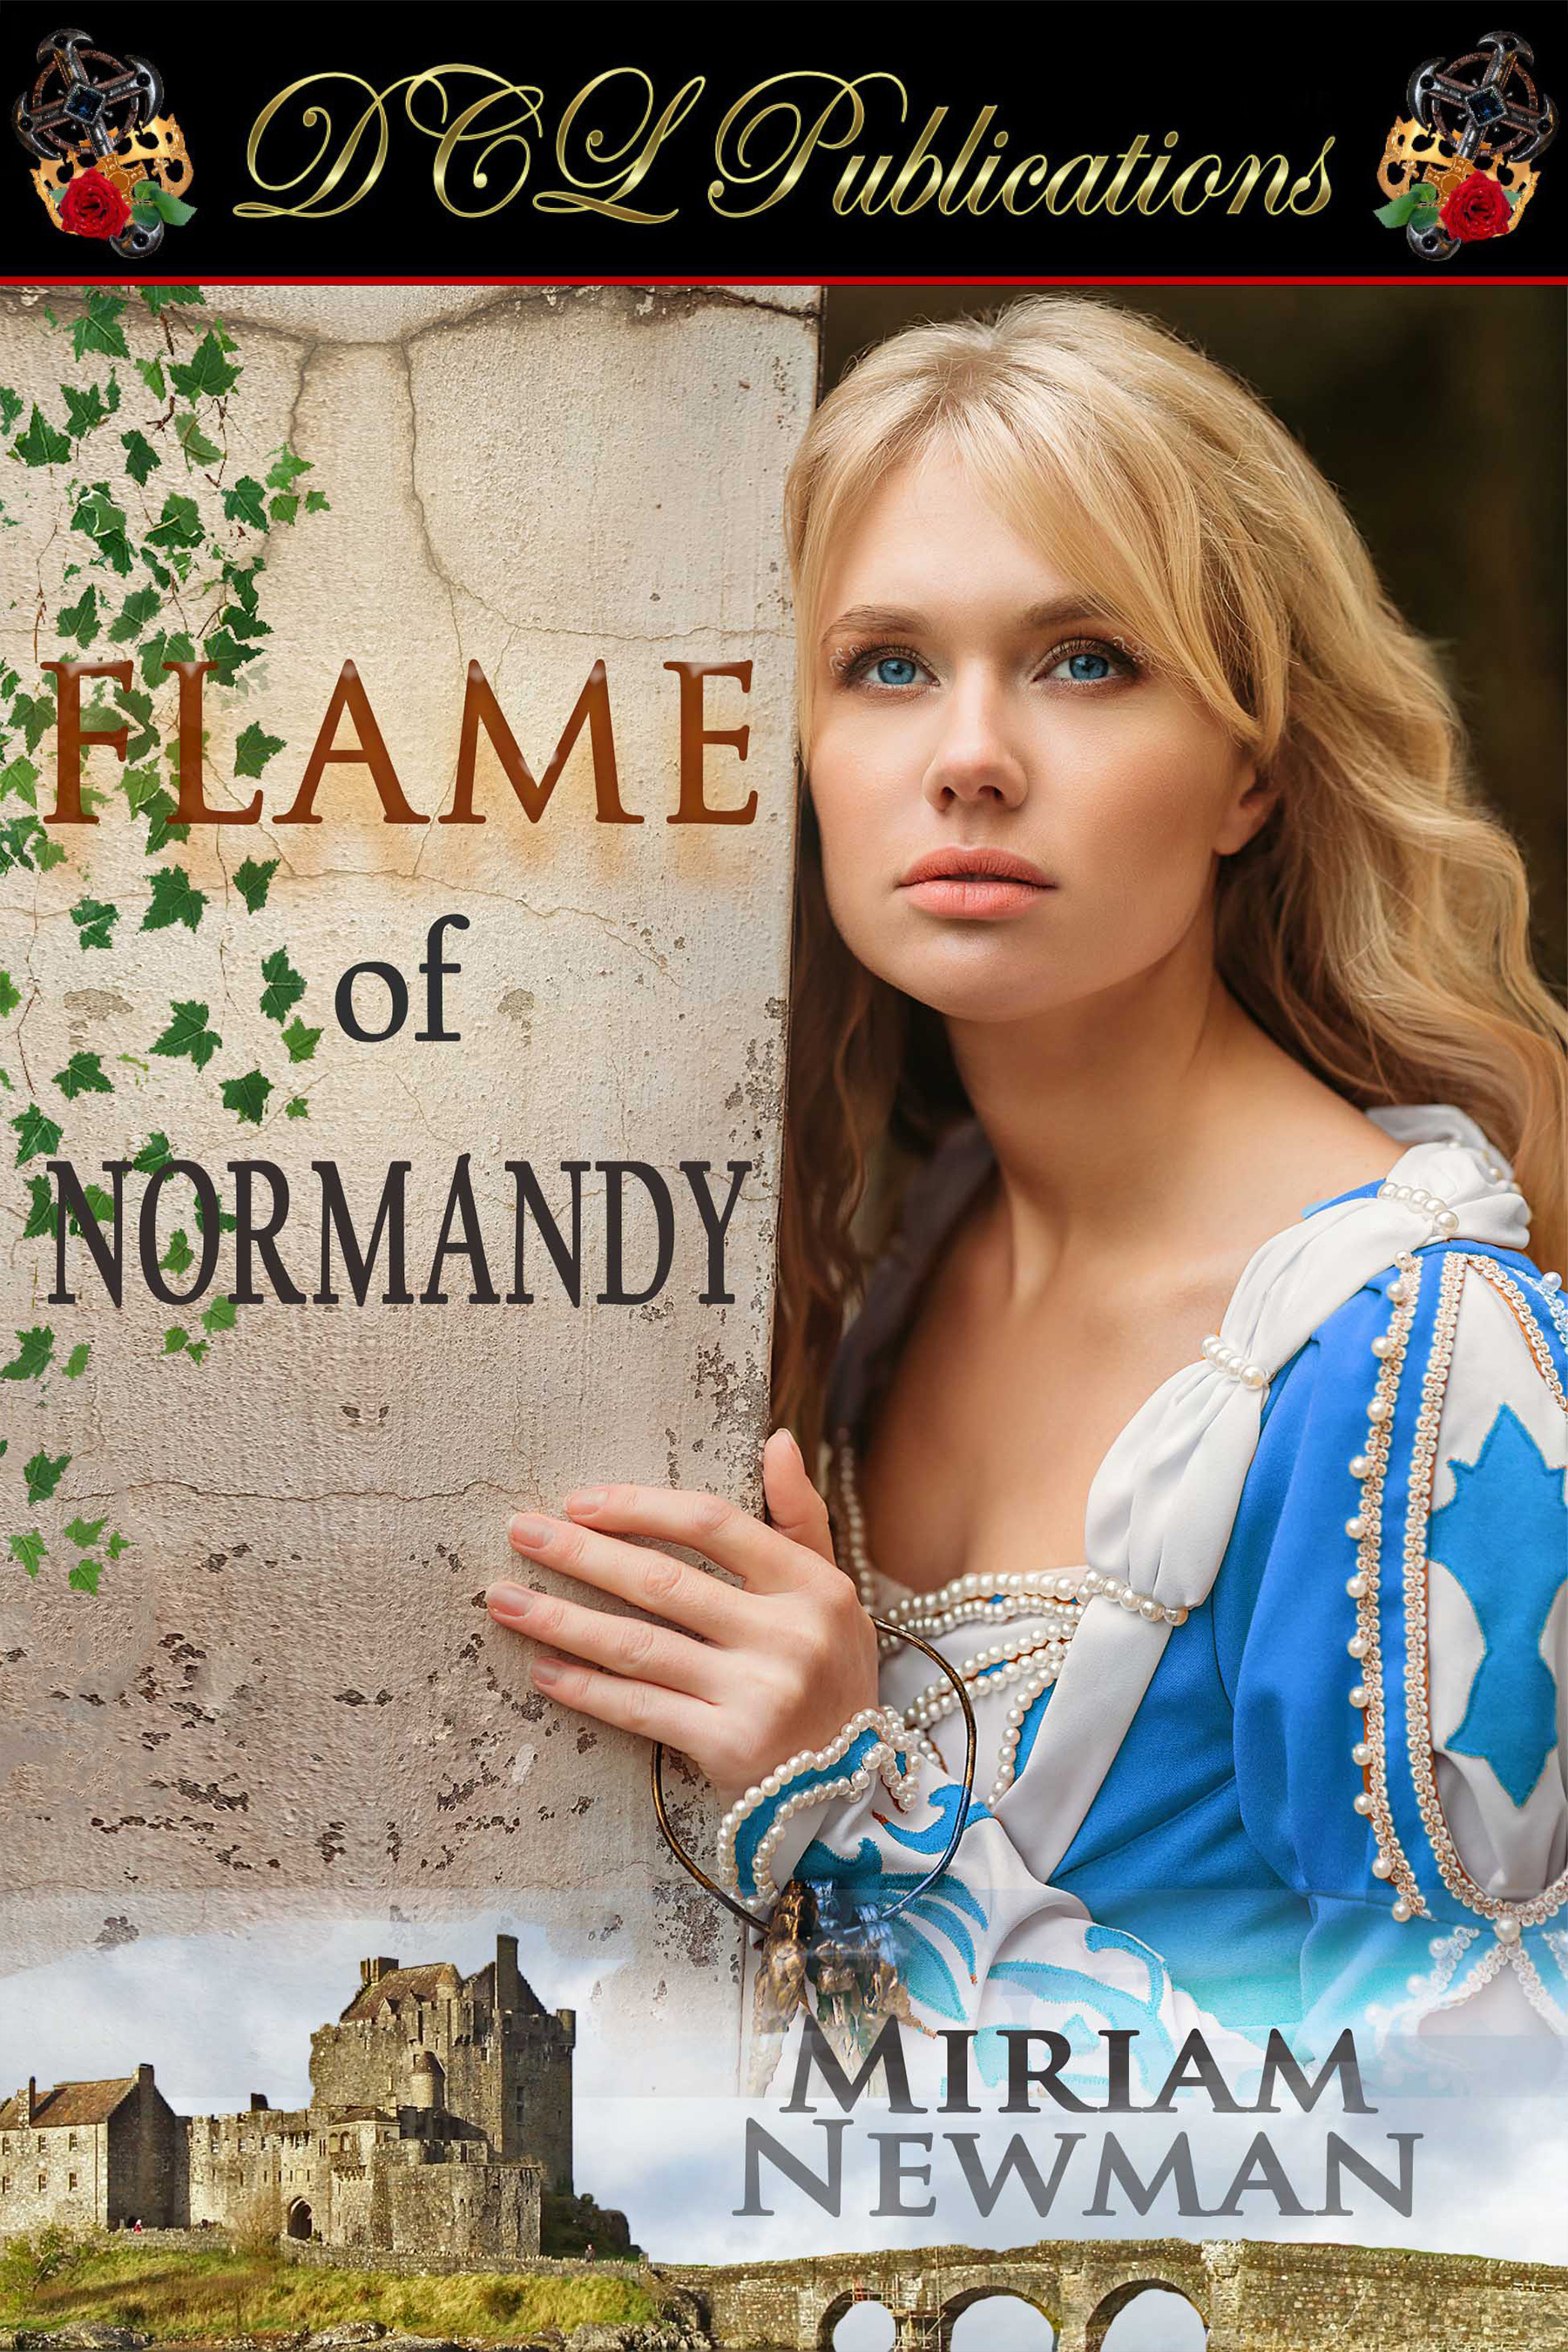 Flame of Normandy cover